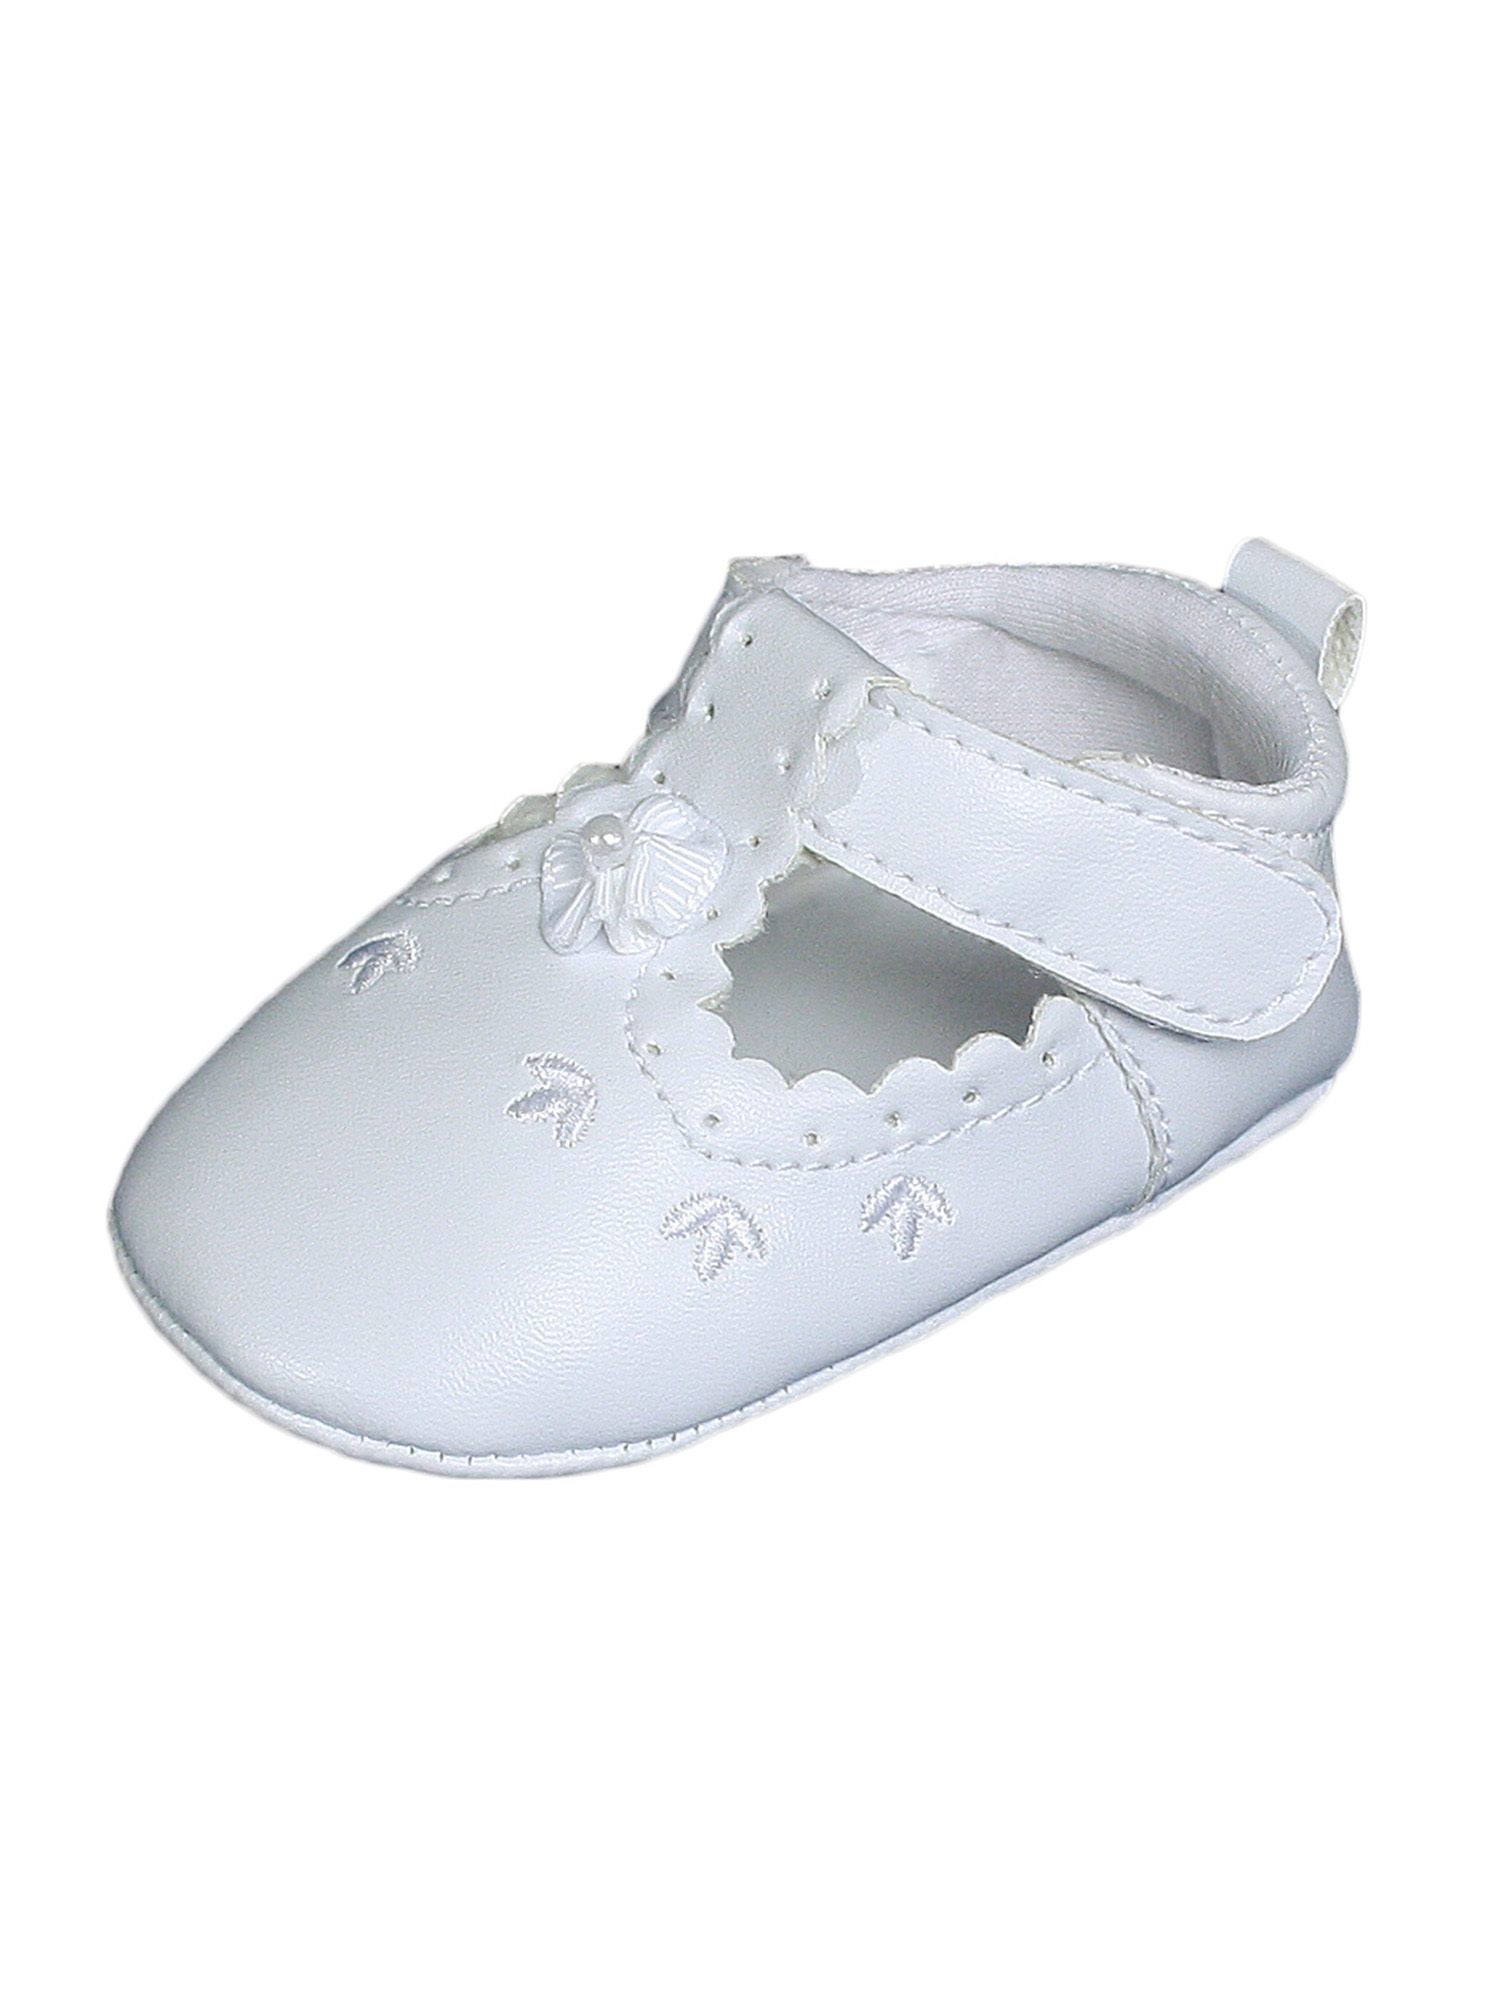 Little Things Mean A Lot Baby Girls All White Faux Leather Mary Jane Crib Shoe with Perforation Accents